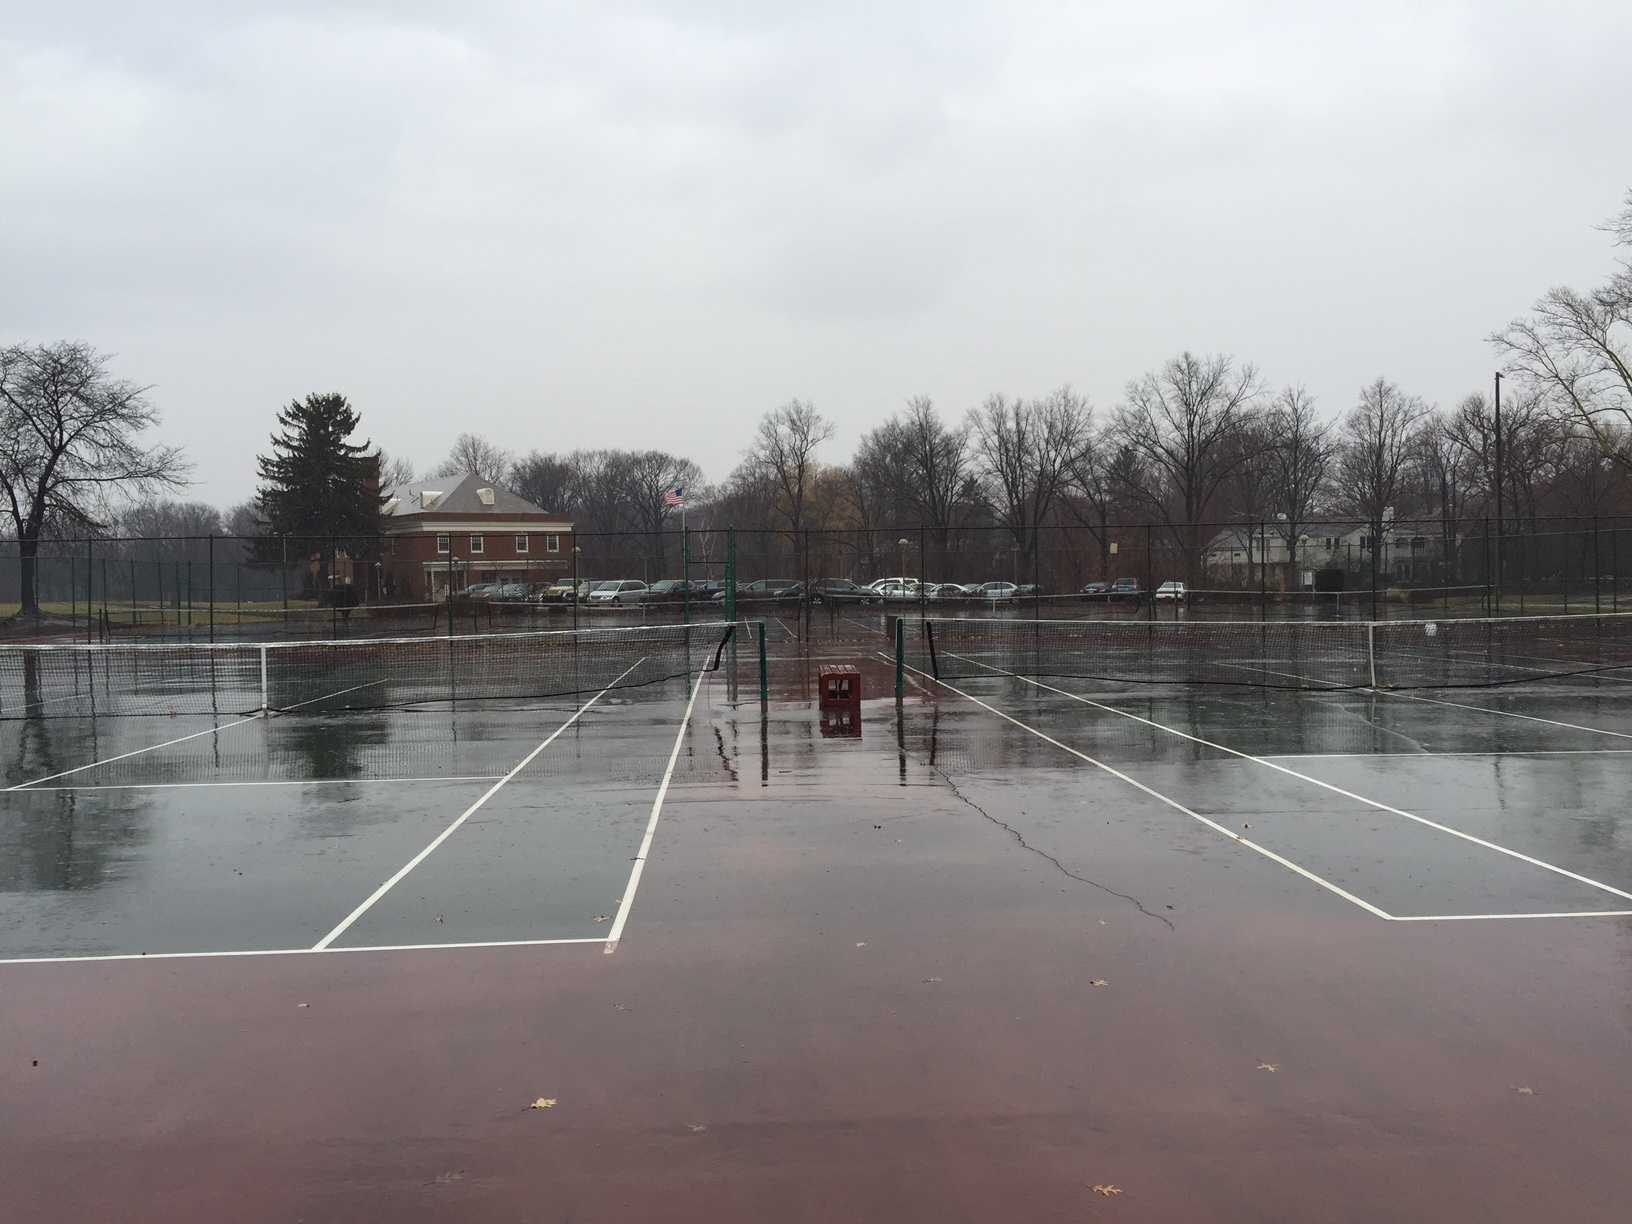 The tennis courts near Onaway Elementary School were flooded after snow melting.